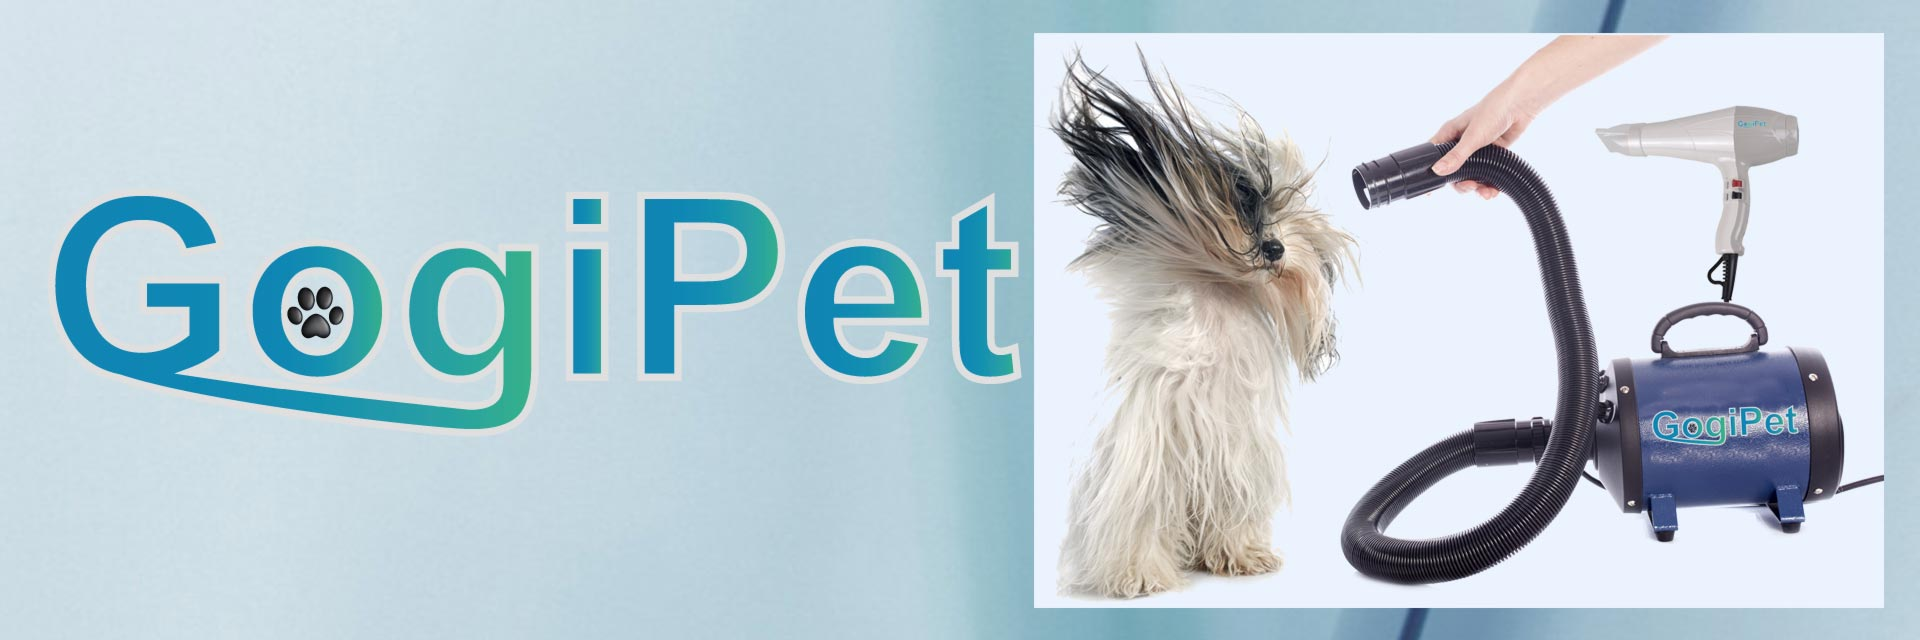 Professional dog dryers for the dog groomer and for private dog grooming